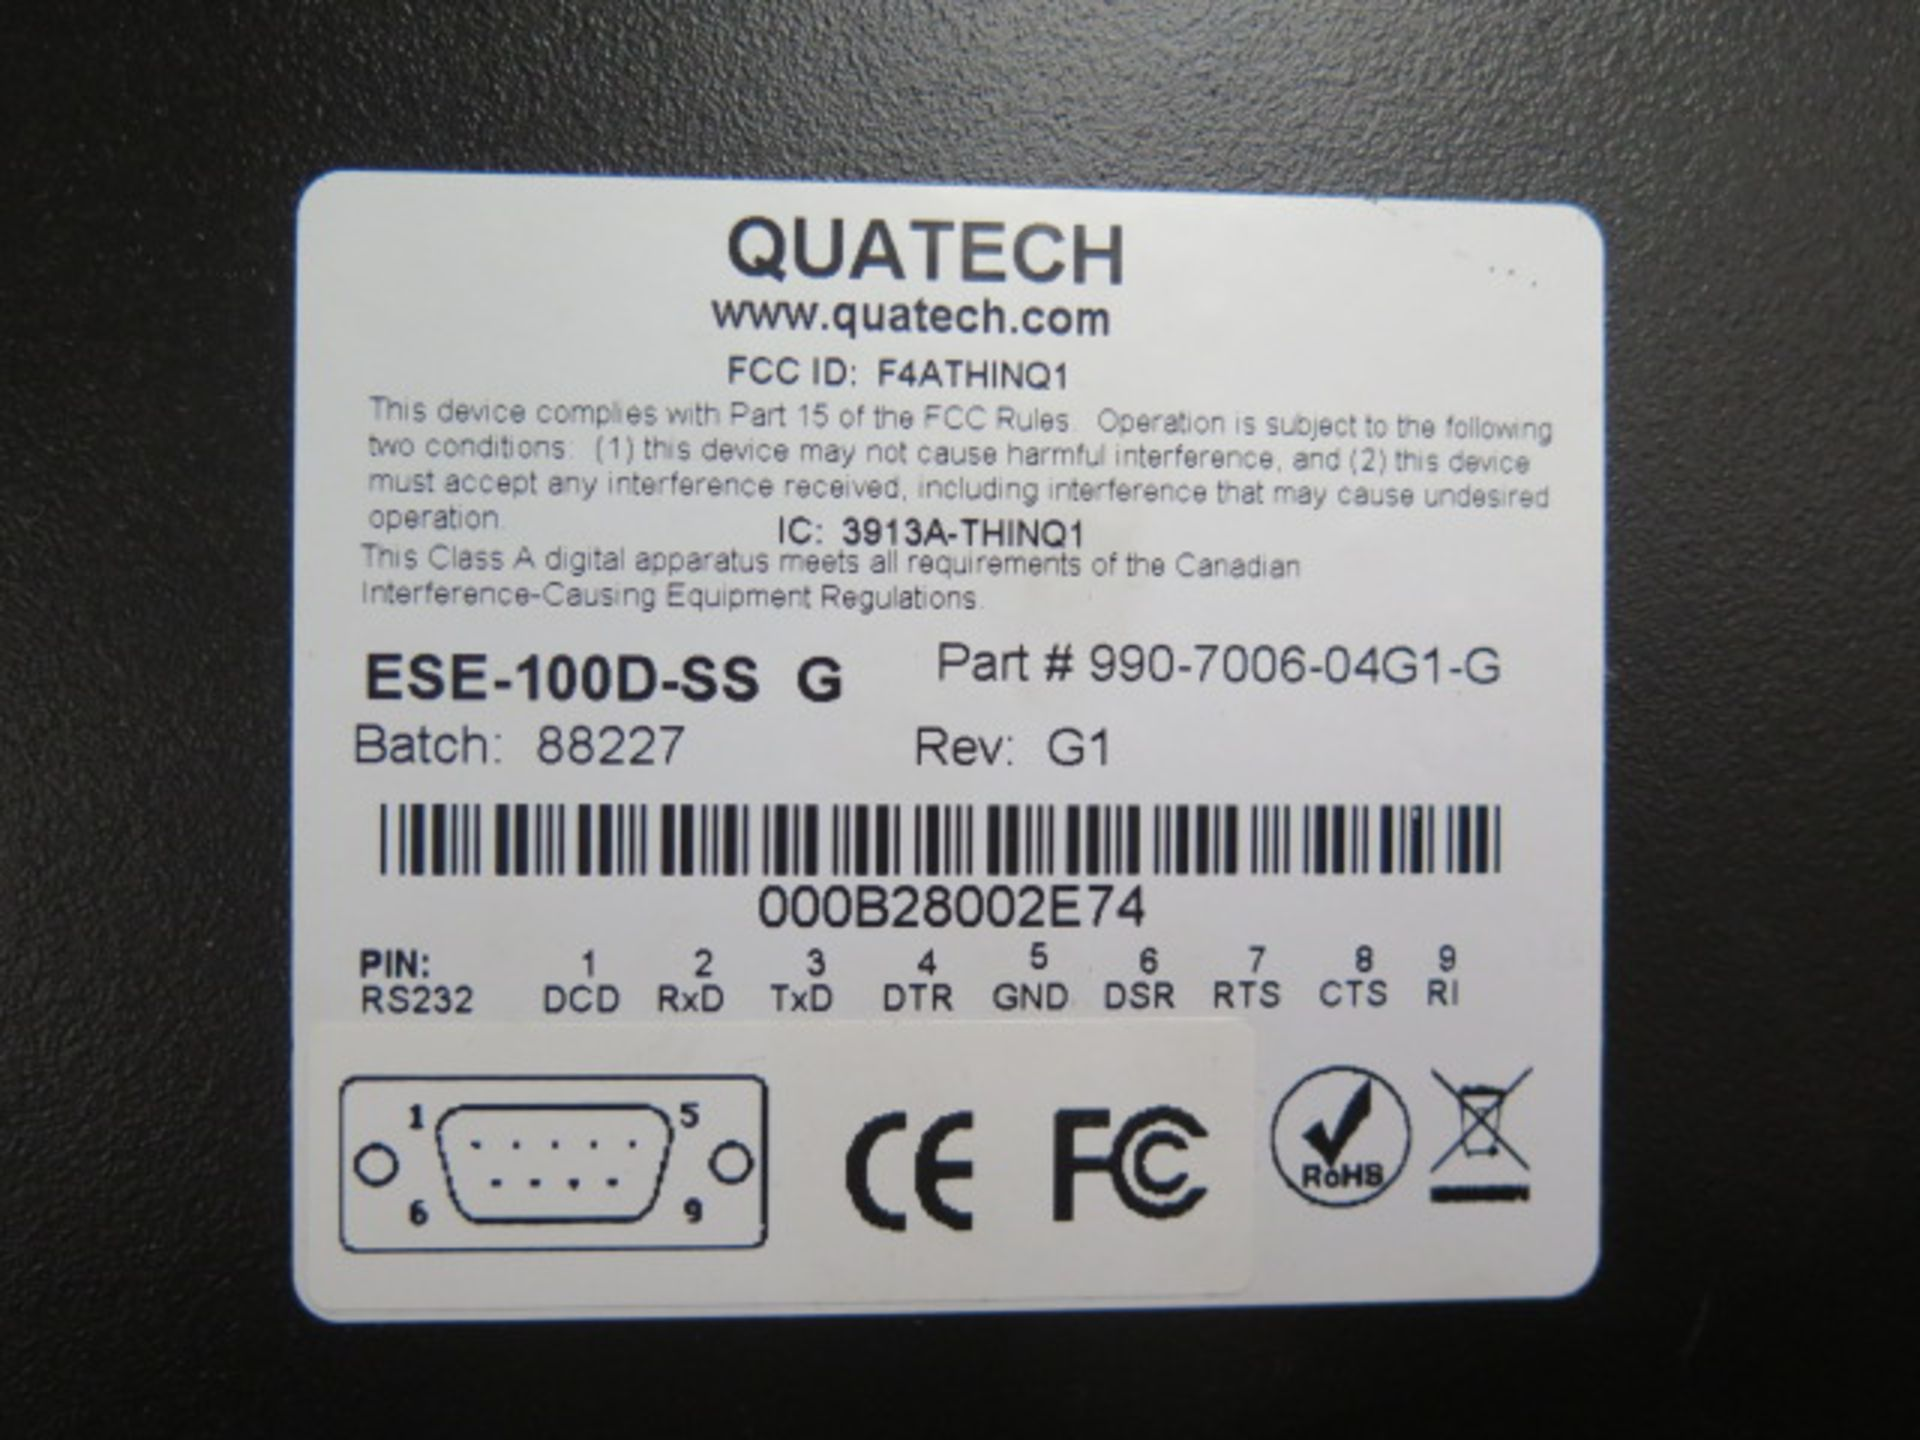 Quatech ESE-100D-SS G Device Servers (3) (SOLD AS-IS - NO WARRANTY) - Image 5 of 5